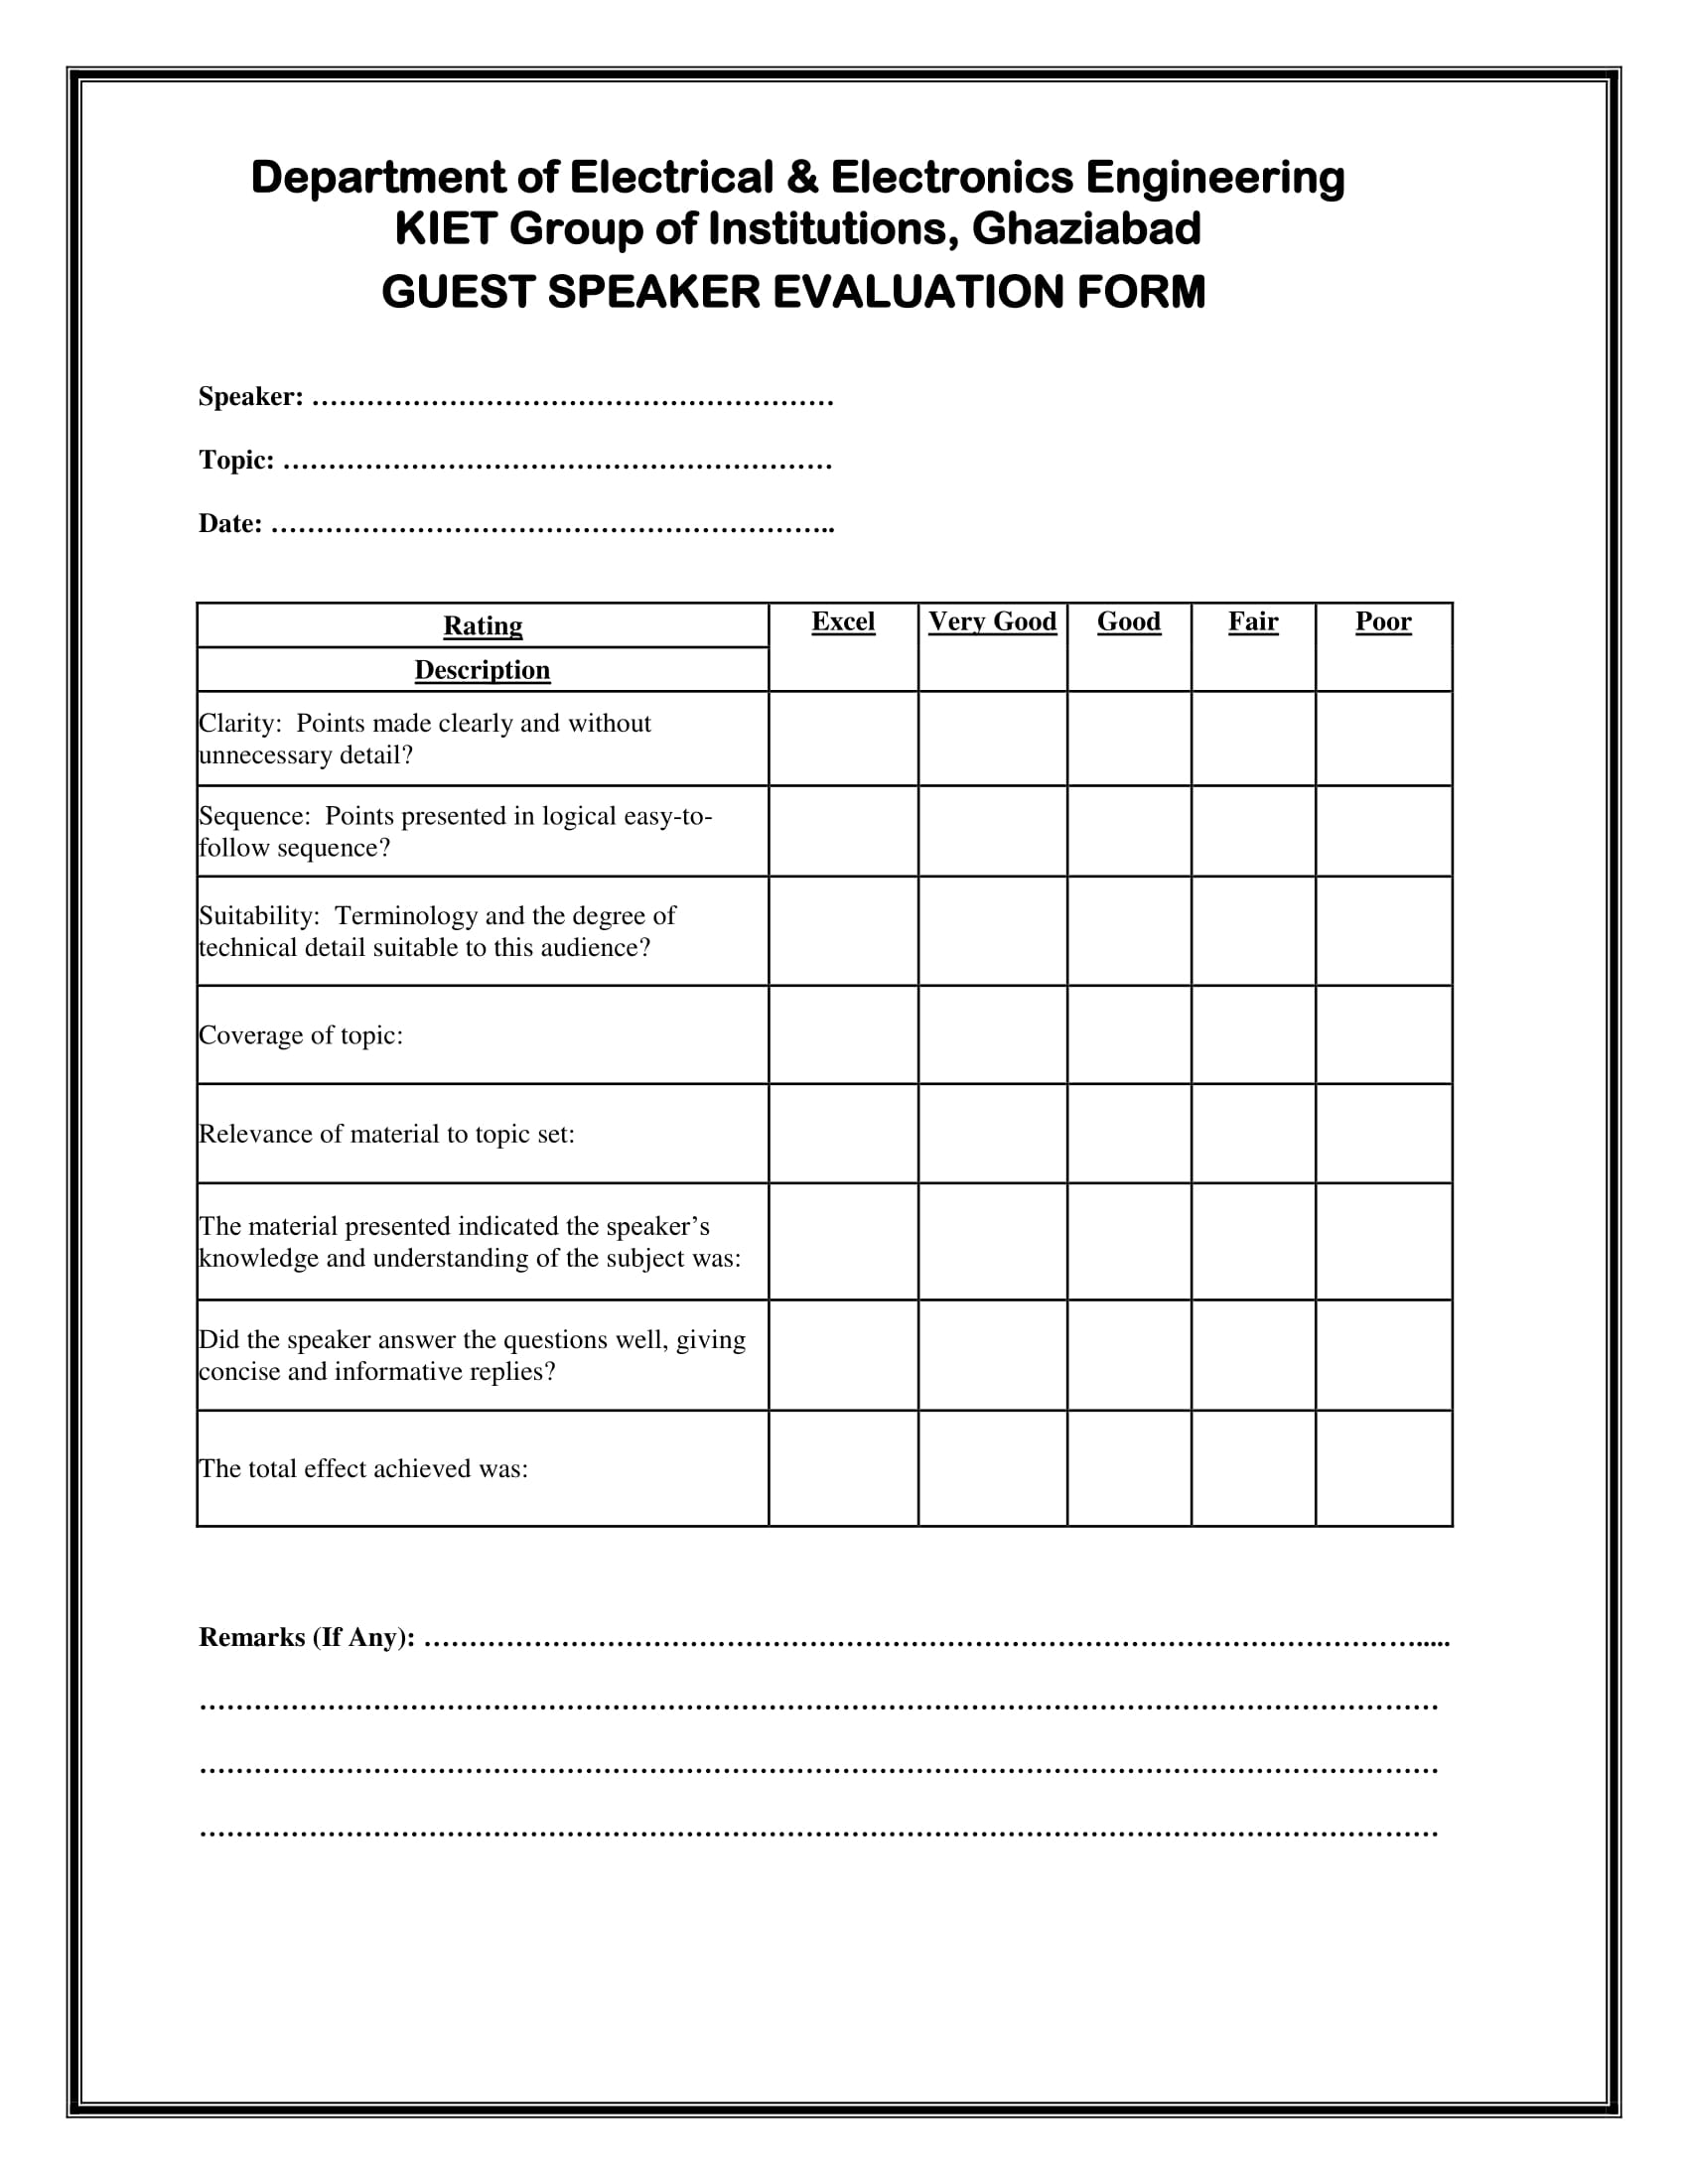 Sample Feedback Form After Seminar Special Events Assistant Sample  Engineering Speaker Evaluation Form 1 Sample Feedback